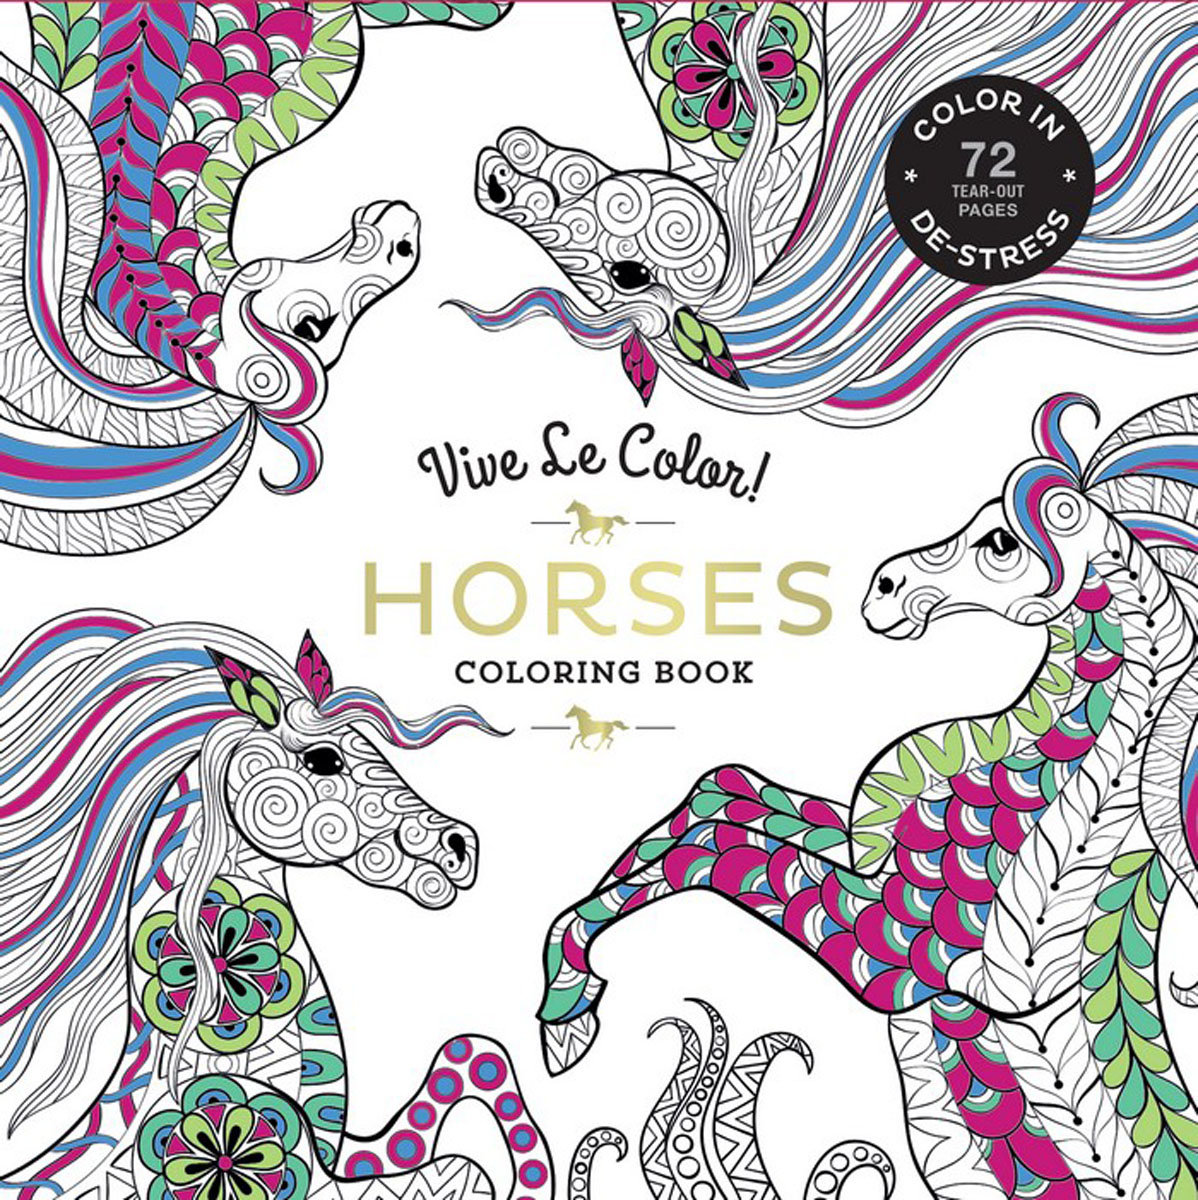 Vive Le Color! Horses (Adult Coloring Book) pretty ponies colouring book